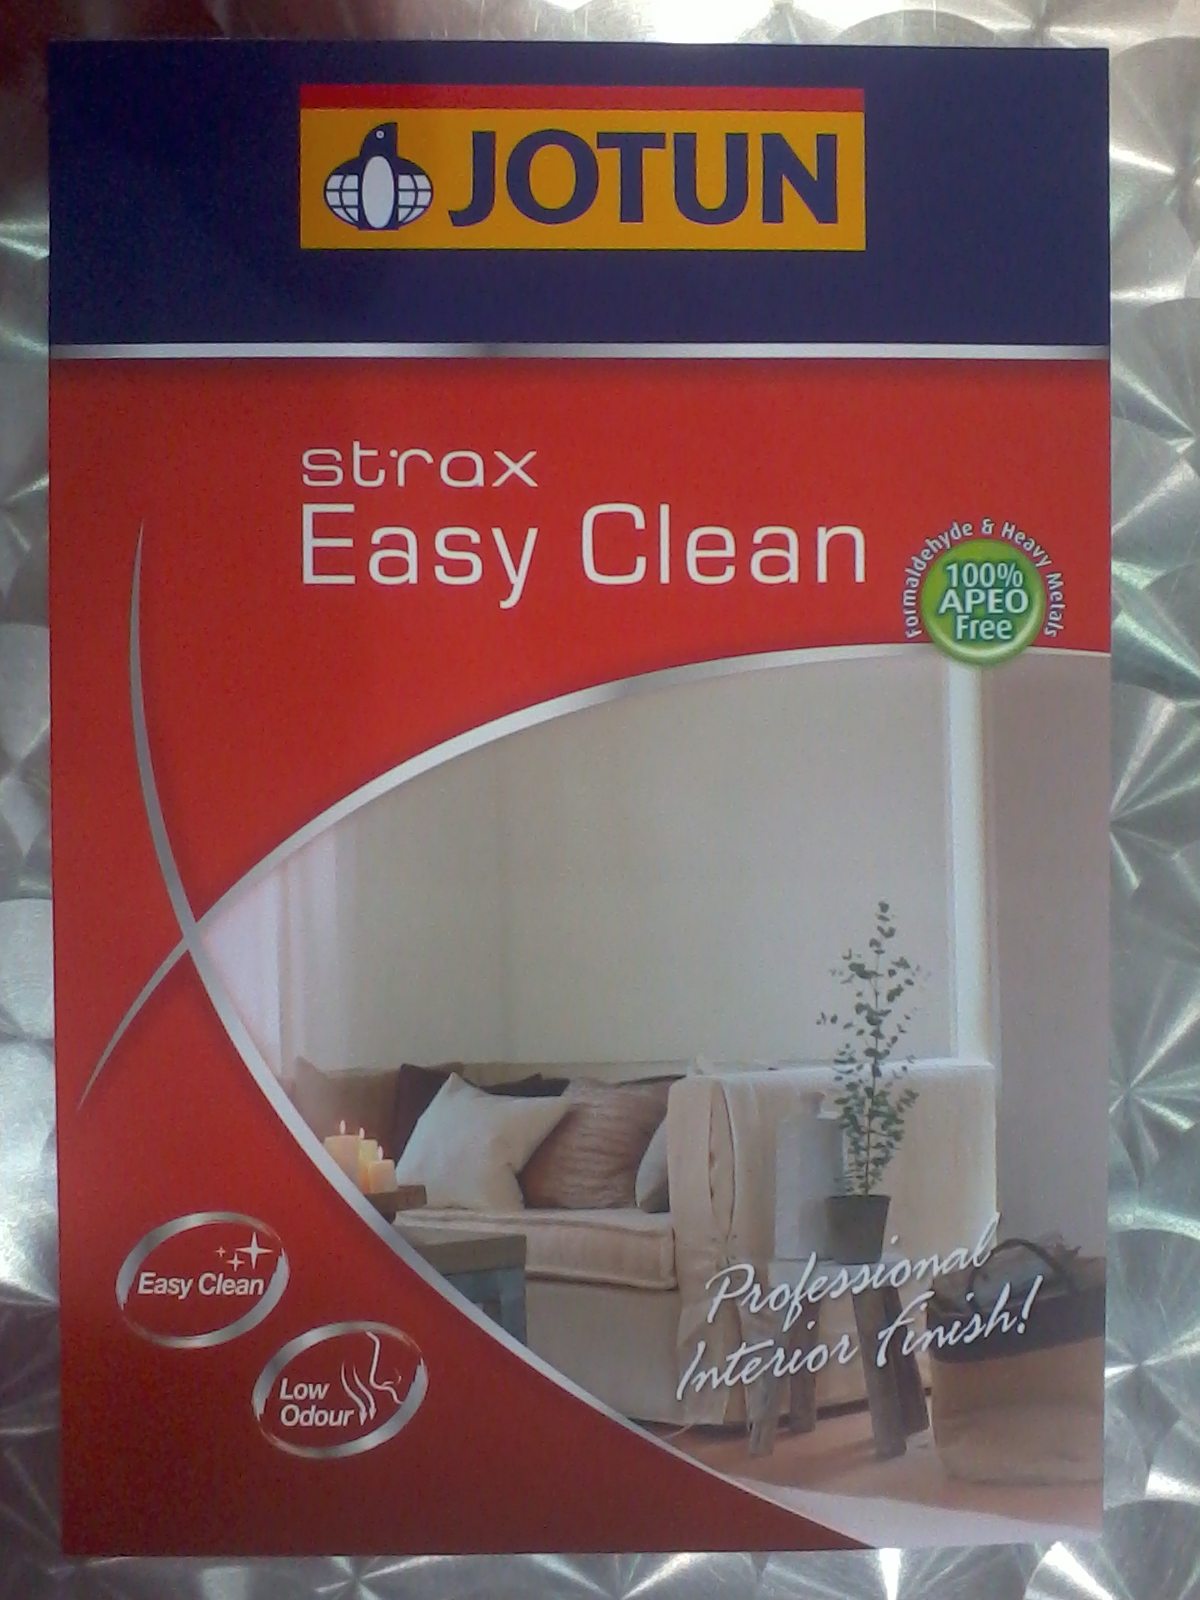 New Launch Jotun Strax Easy Clean Inspirasi Ana